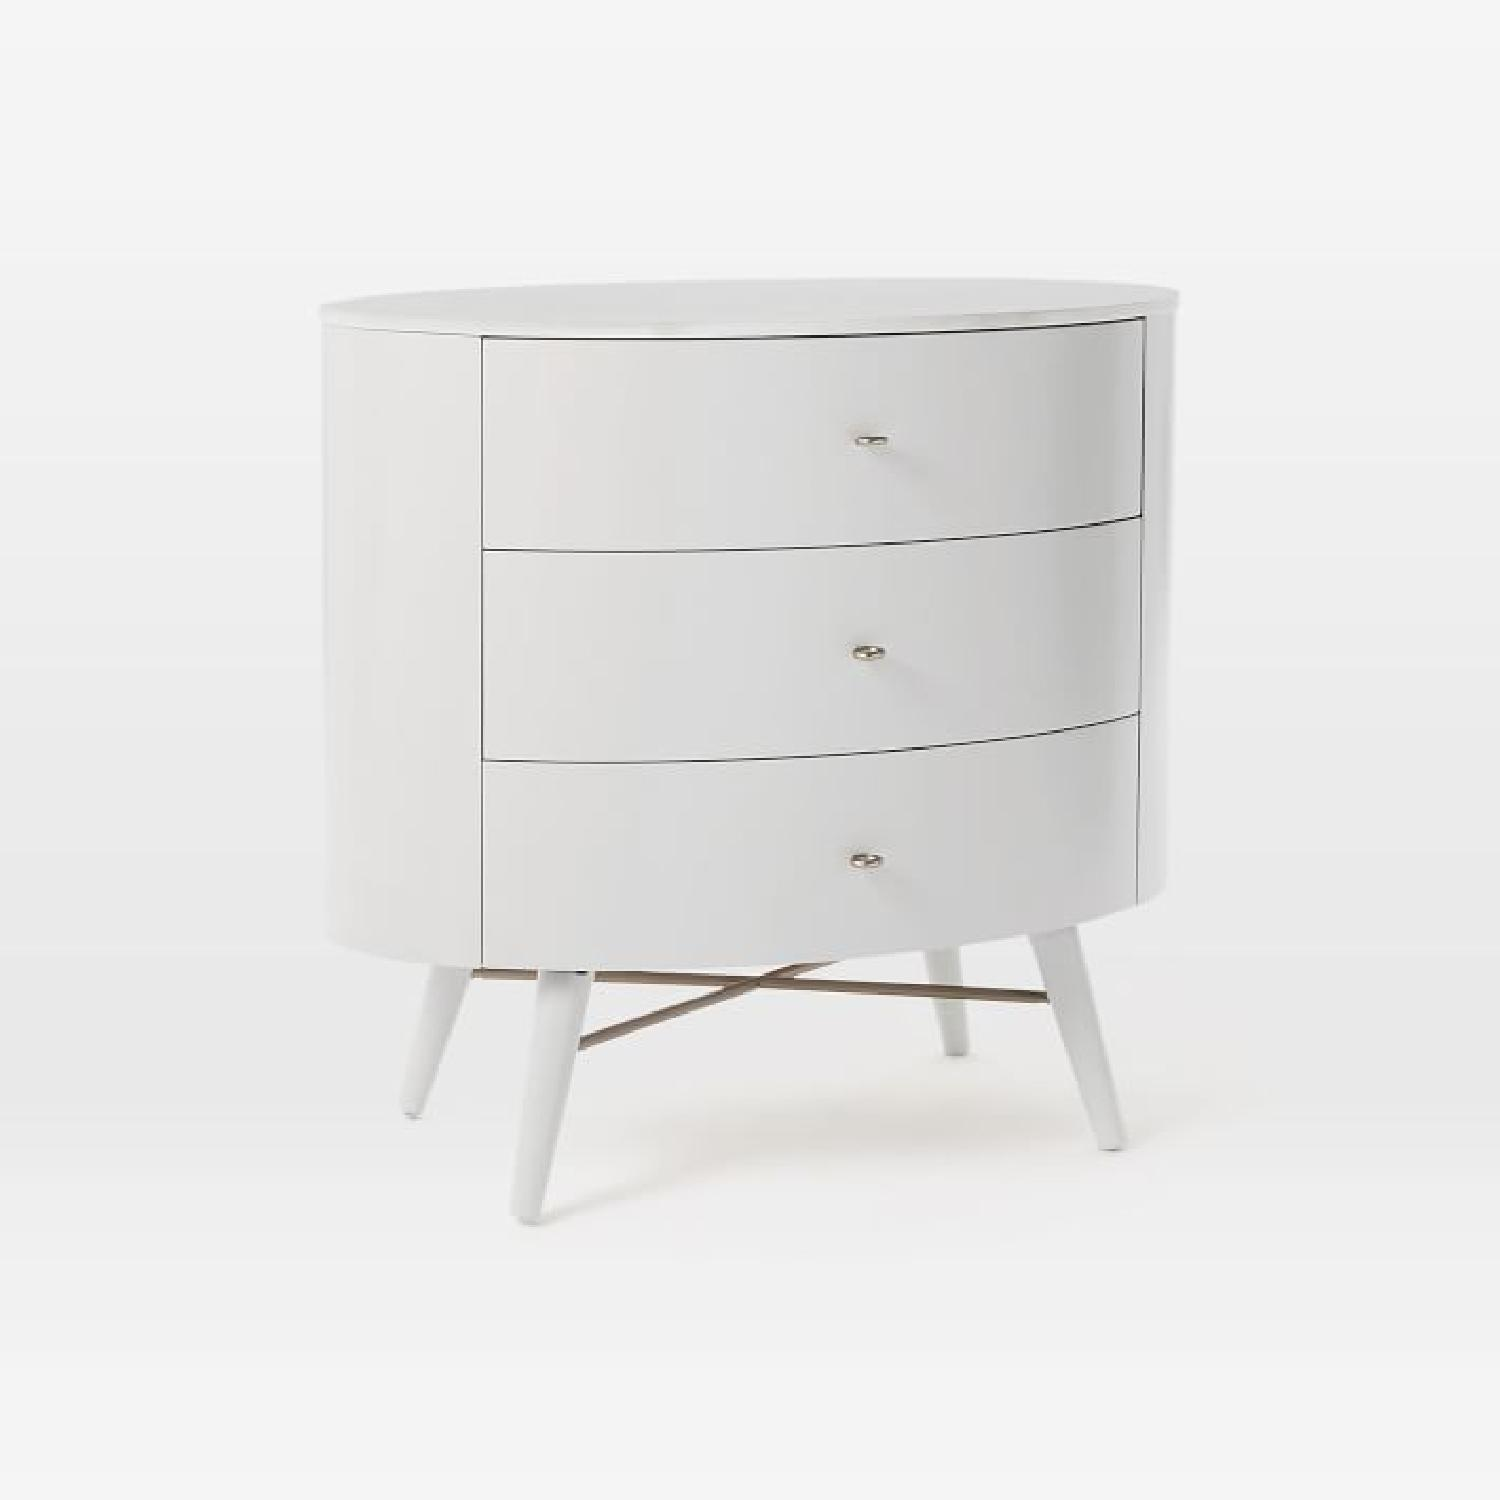 West Elm Penelope 3 Drawer Dresser - image-1